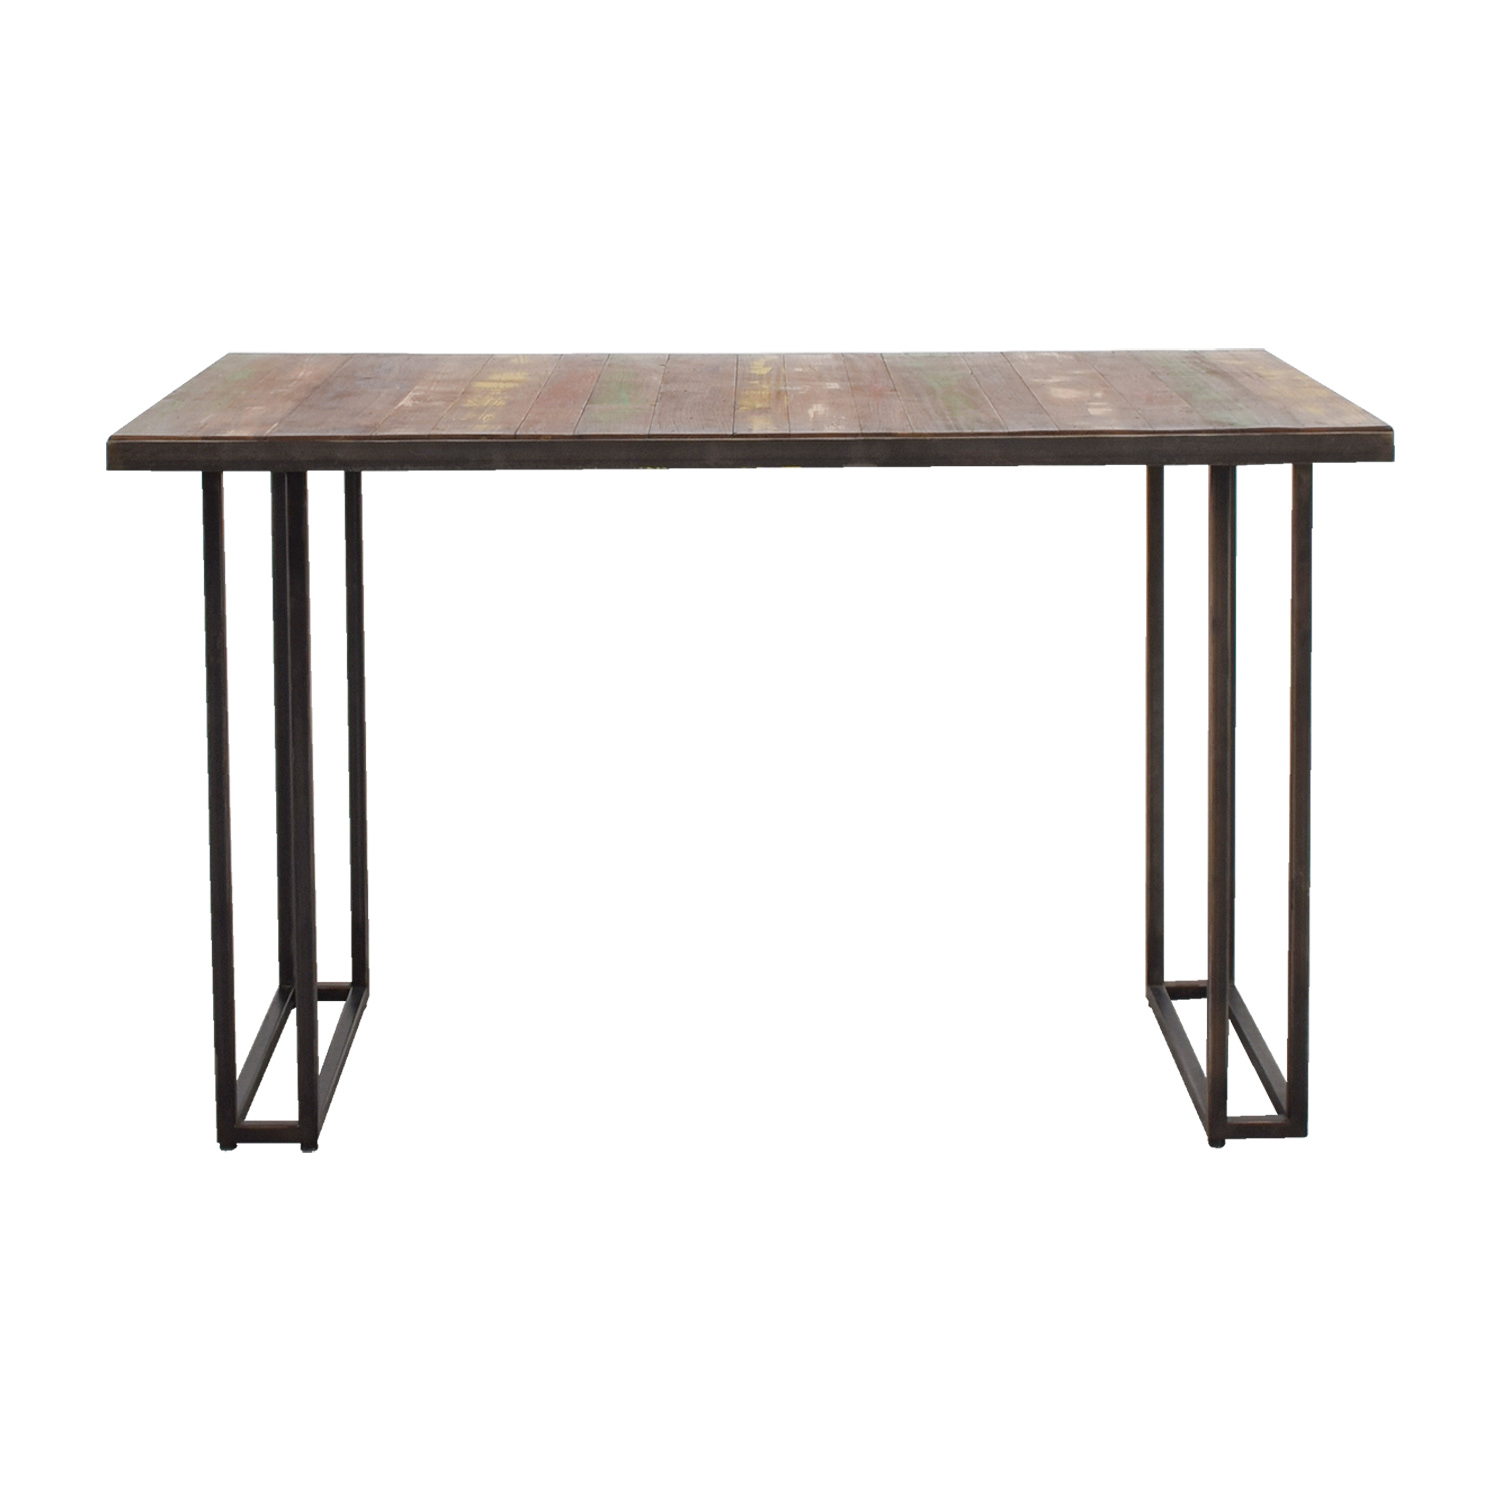 West Elm West Elm Wood & Colored Dining Table Tables